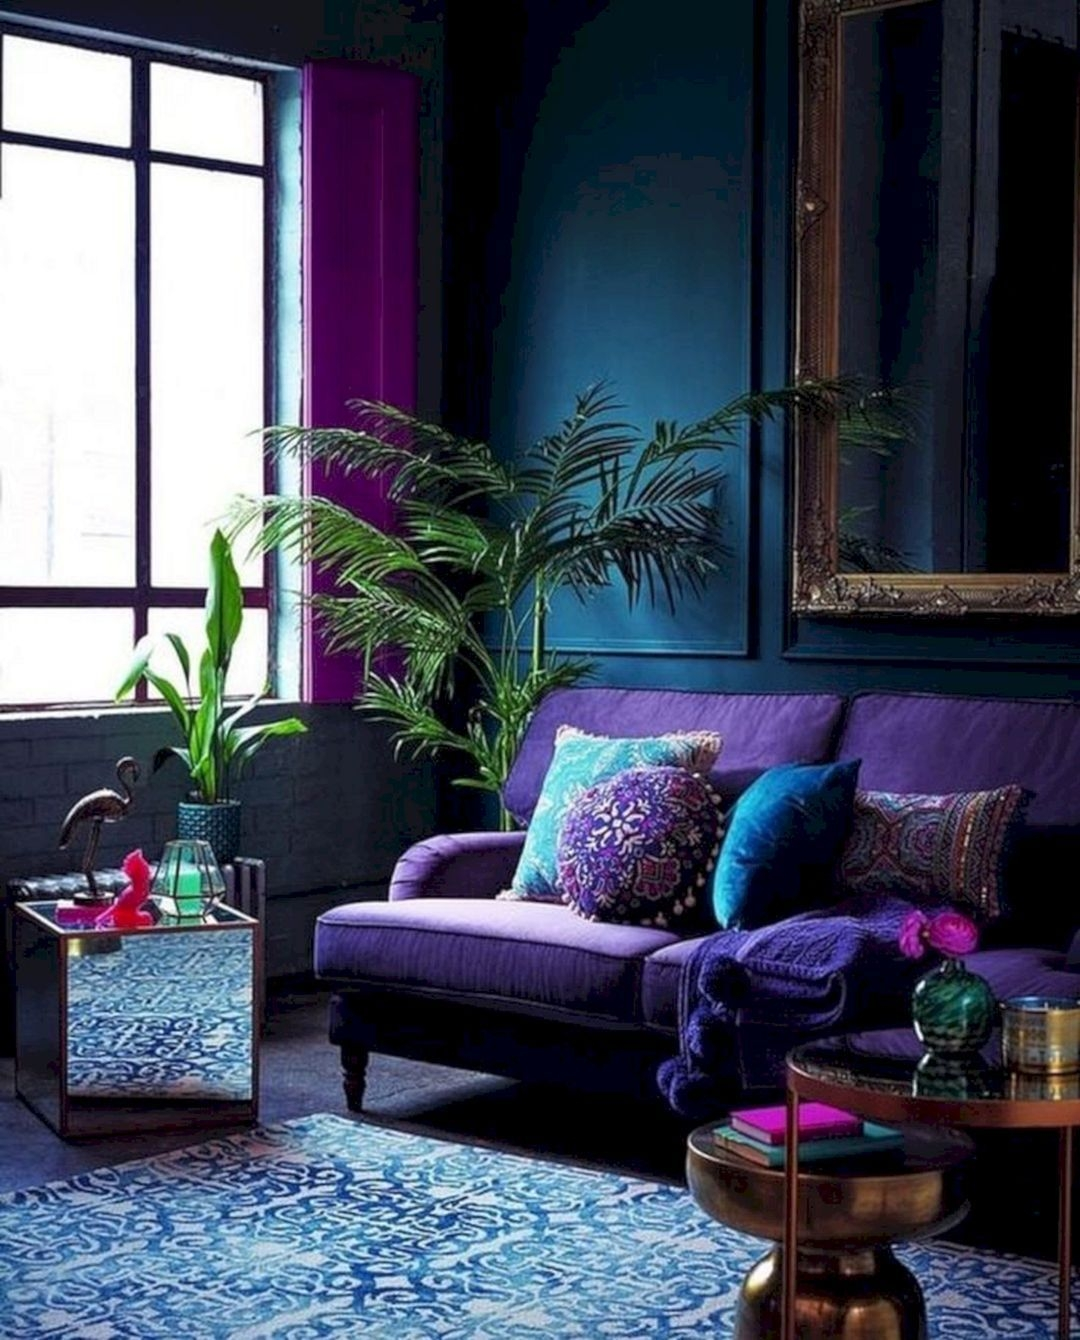 Extraordinary Home Decor Ideas Living Room Modern Boho area Rug with Plum Accents On Stunning 15 Gorgeous Living Room Green Purple Interior You Need to On Home Decor Ideas Living Room Modern Boho area Rug with Plum Accents